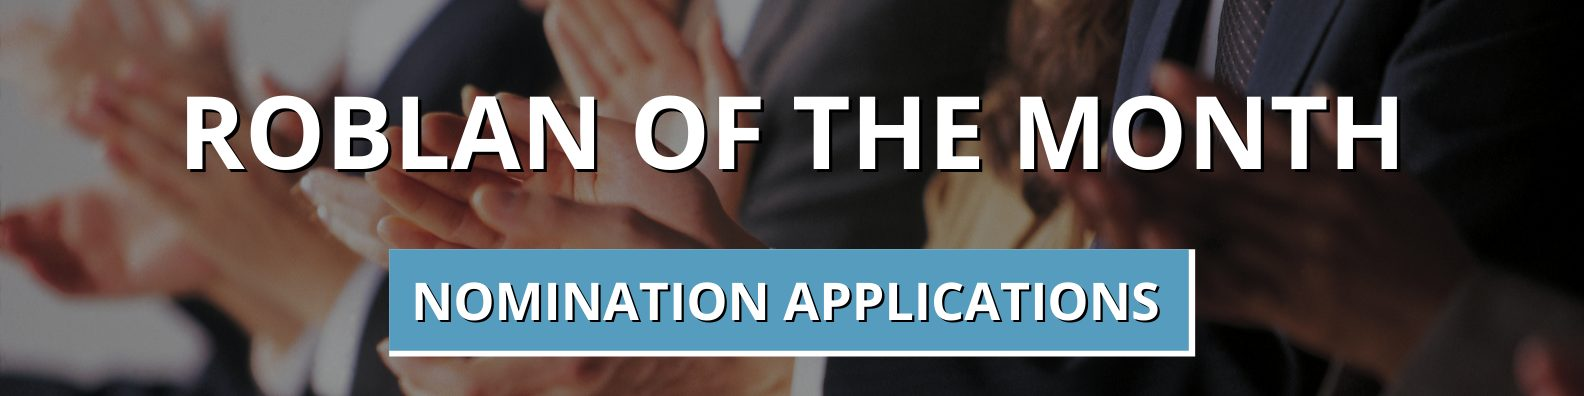 nomination application for roblan of the month